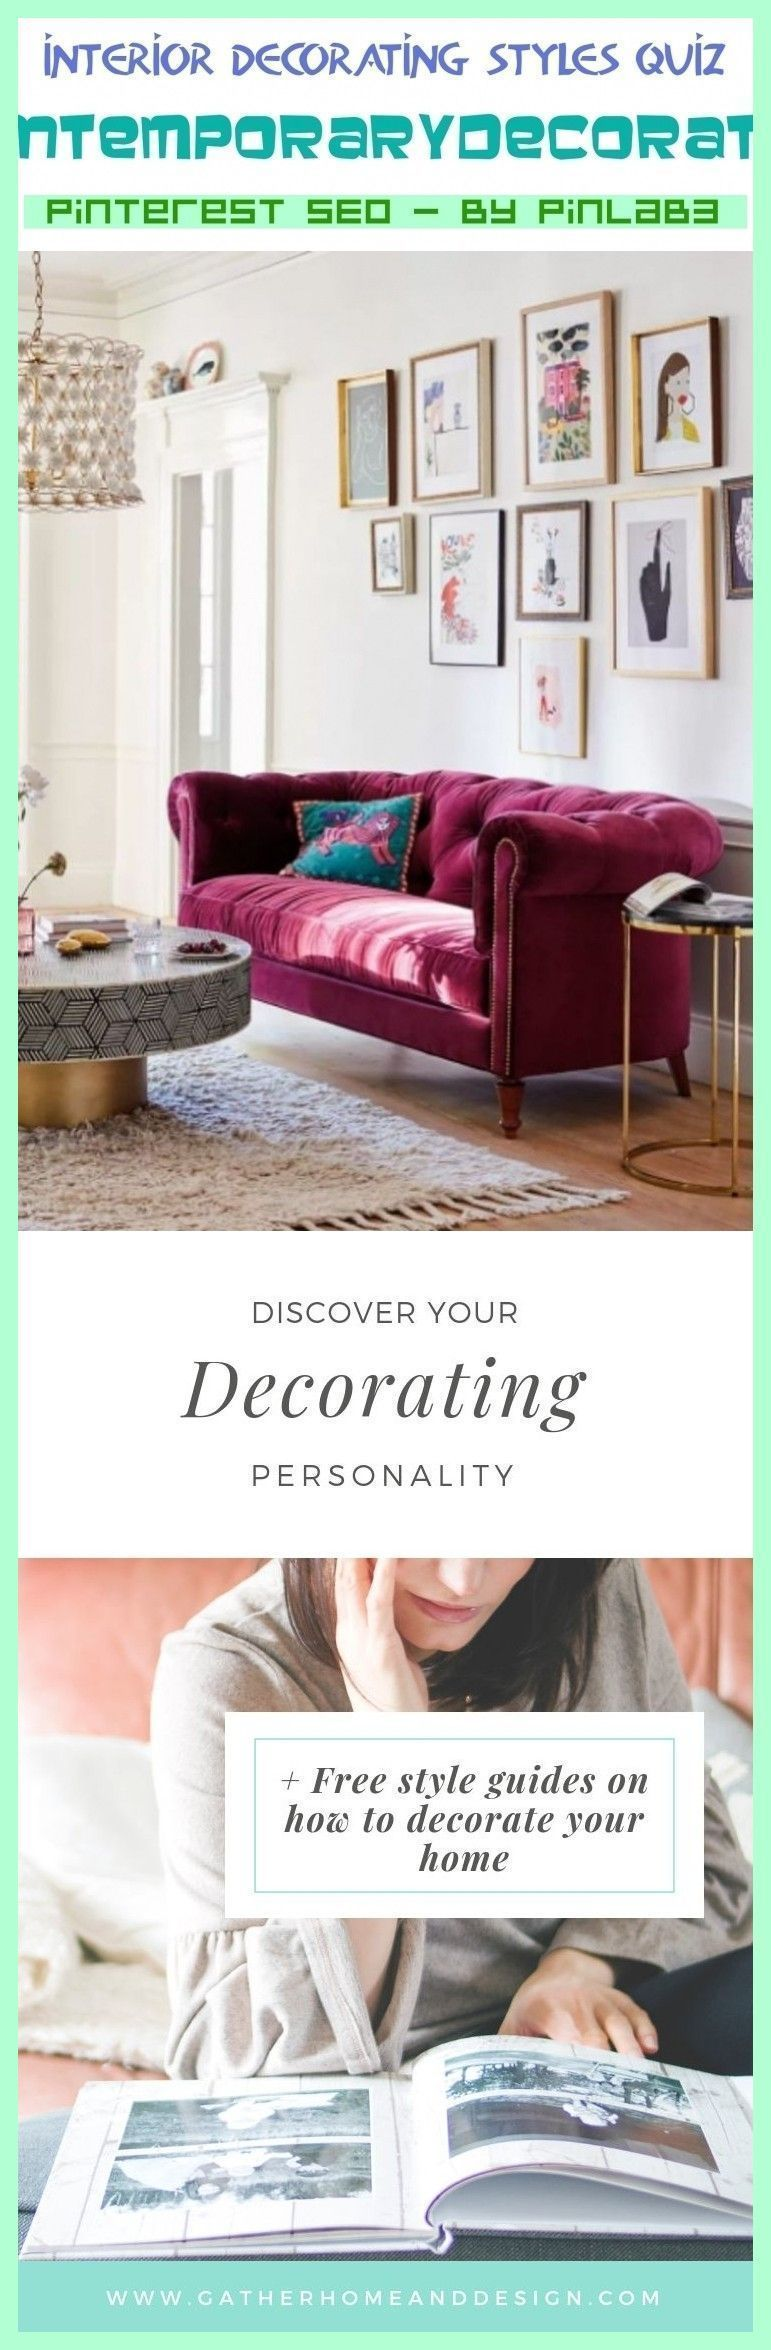 Eclectic Decor Interior Decorating Styles Interior Decorating Styles Quiz I In 2020 Interior Decorating Styles Decorating Styles Quiz Interior Design Styles